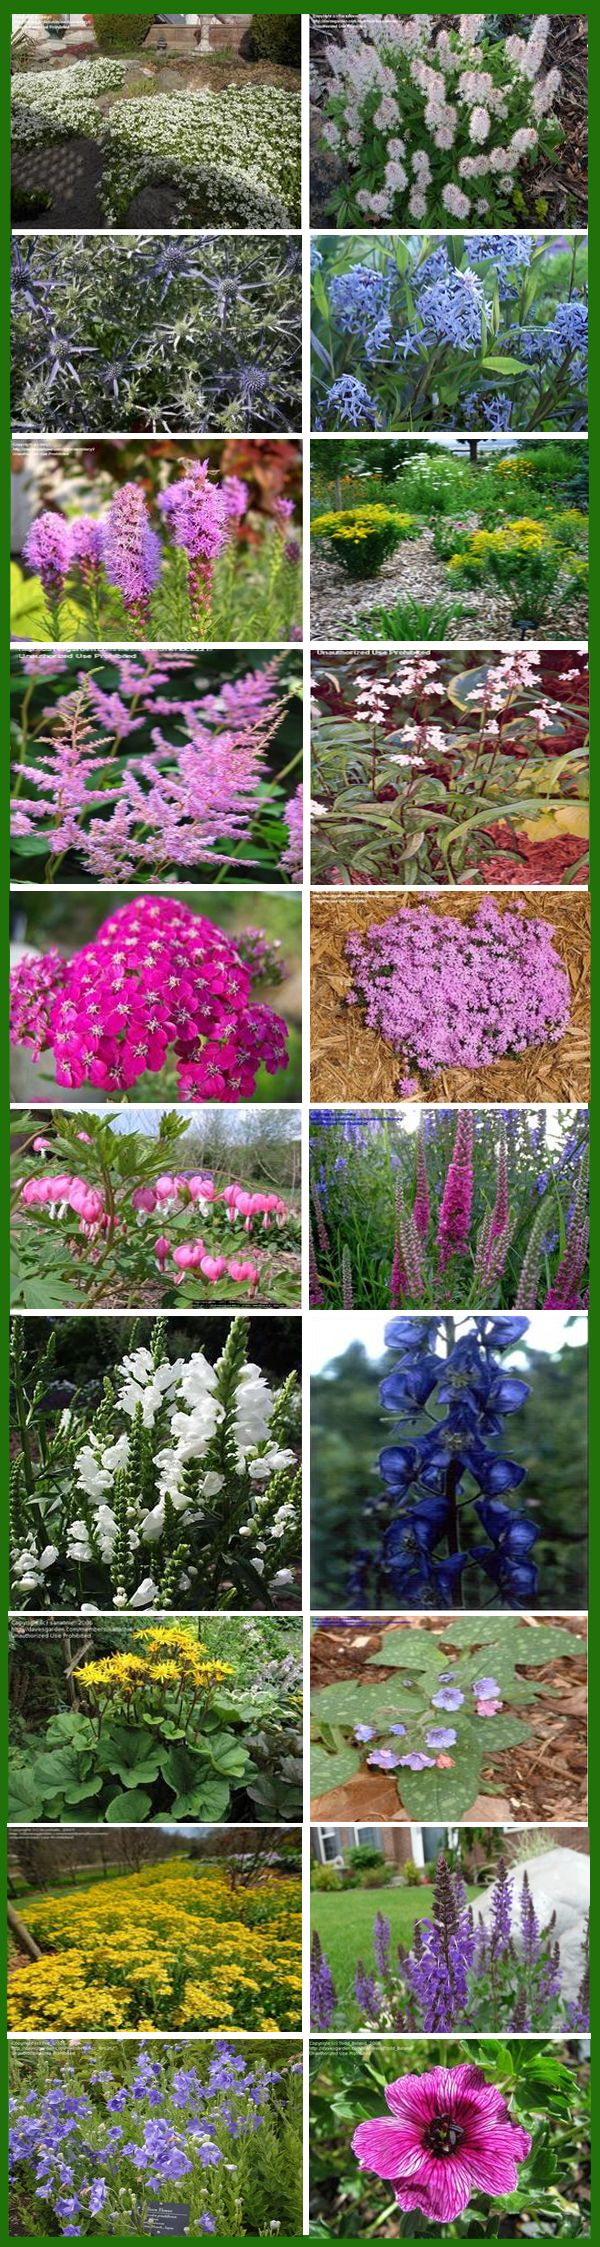 "The Hardiest of Hardy Perennials. Generally speaking, a plant is classified as a perennial if it can survive to Zone 7. Above that range, plants become tender perennials or annuals. For the purpose of this article, we will only consider the ""hardiest"" of hardy perennials, plants that are hardy to Zones 4 and lower (or higher in latitude). The plants on this list are definitely tough enough to survive your area's worst winters."